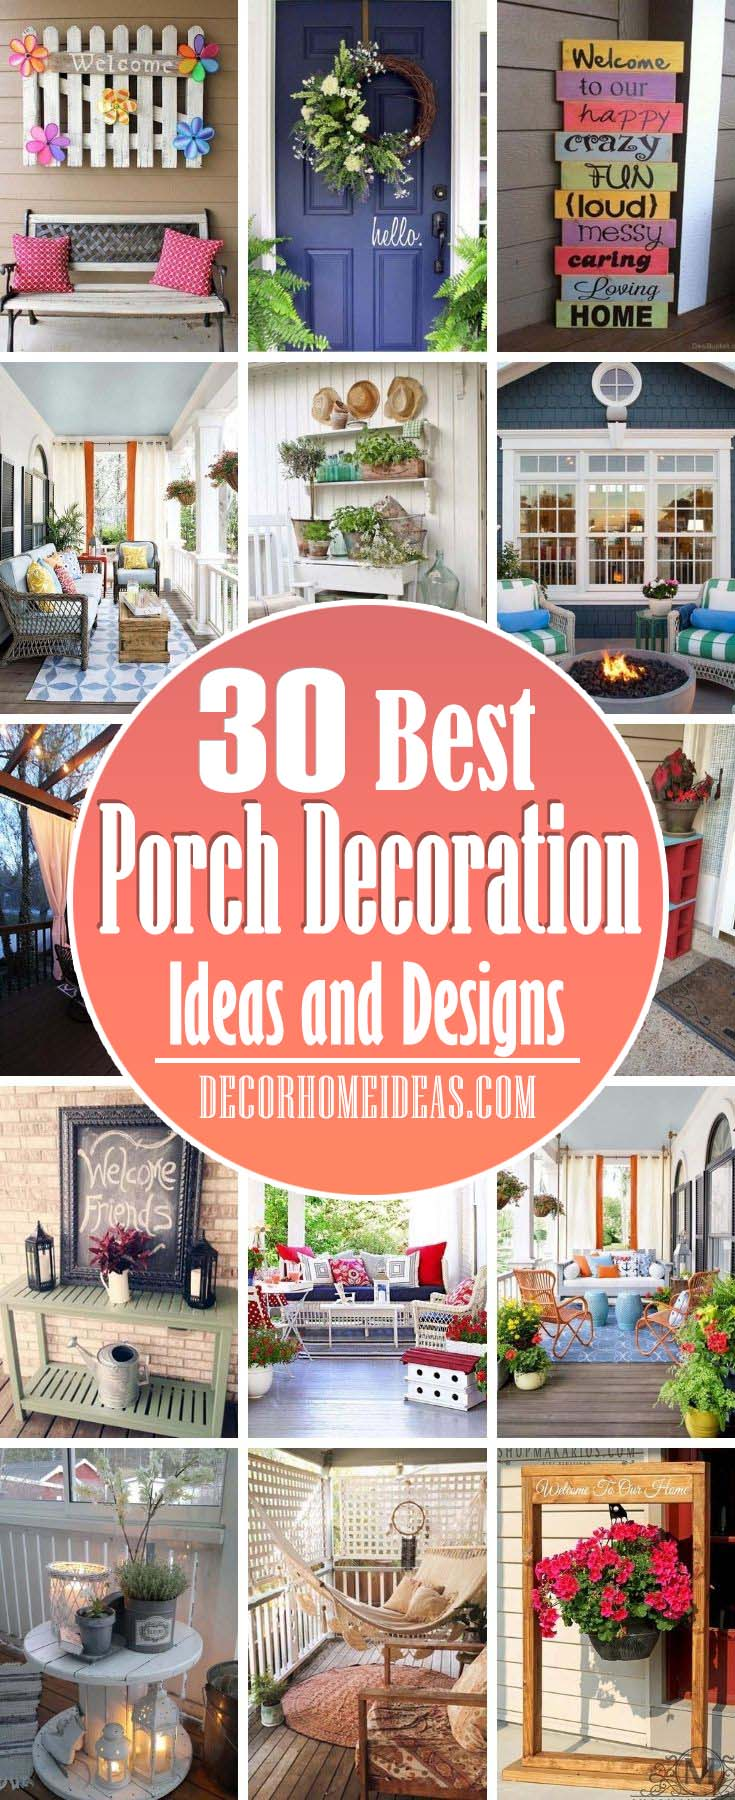 Best Porch Decoration Ideas. Front porches and back patios are our favorite spots to relax in the warmer months. Make yours your favorite escape too with these best front porch ideas, including outdoor decorating ideas, patio ideas, and more.